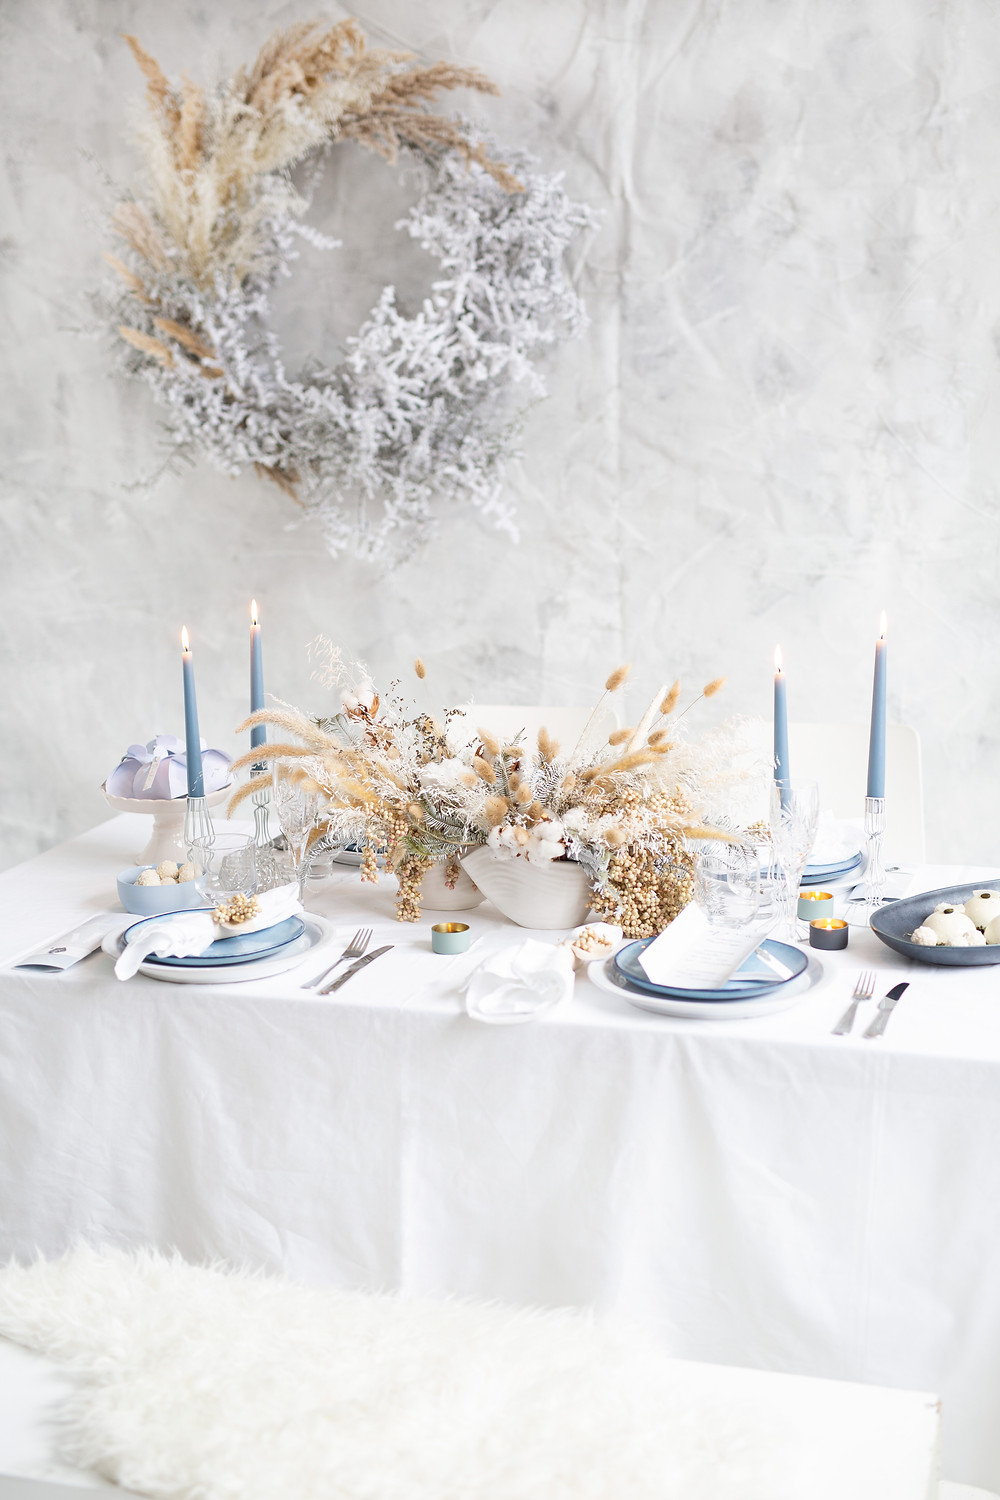 white and blue table decorations with natural centerpieces and candlelight